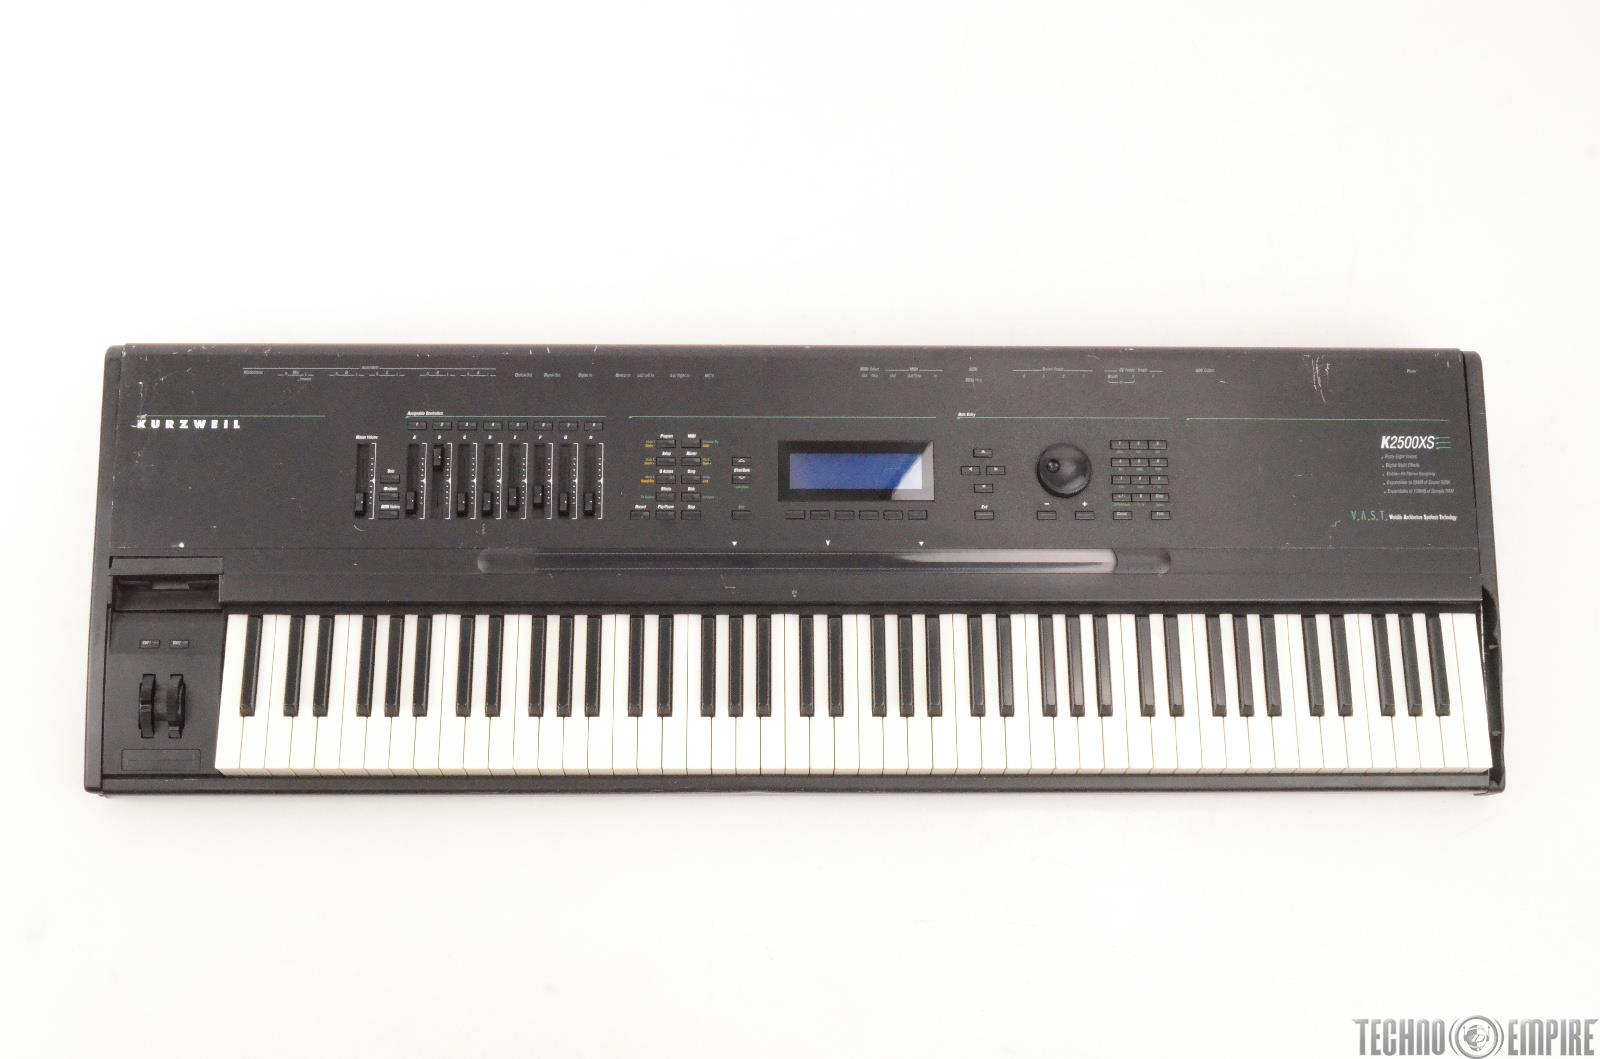 Kurzweil K2500XS 88-Key Synthesizer Sequencer Keyboard FOR PARTS #27137